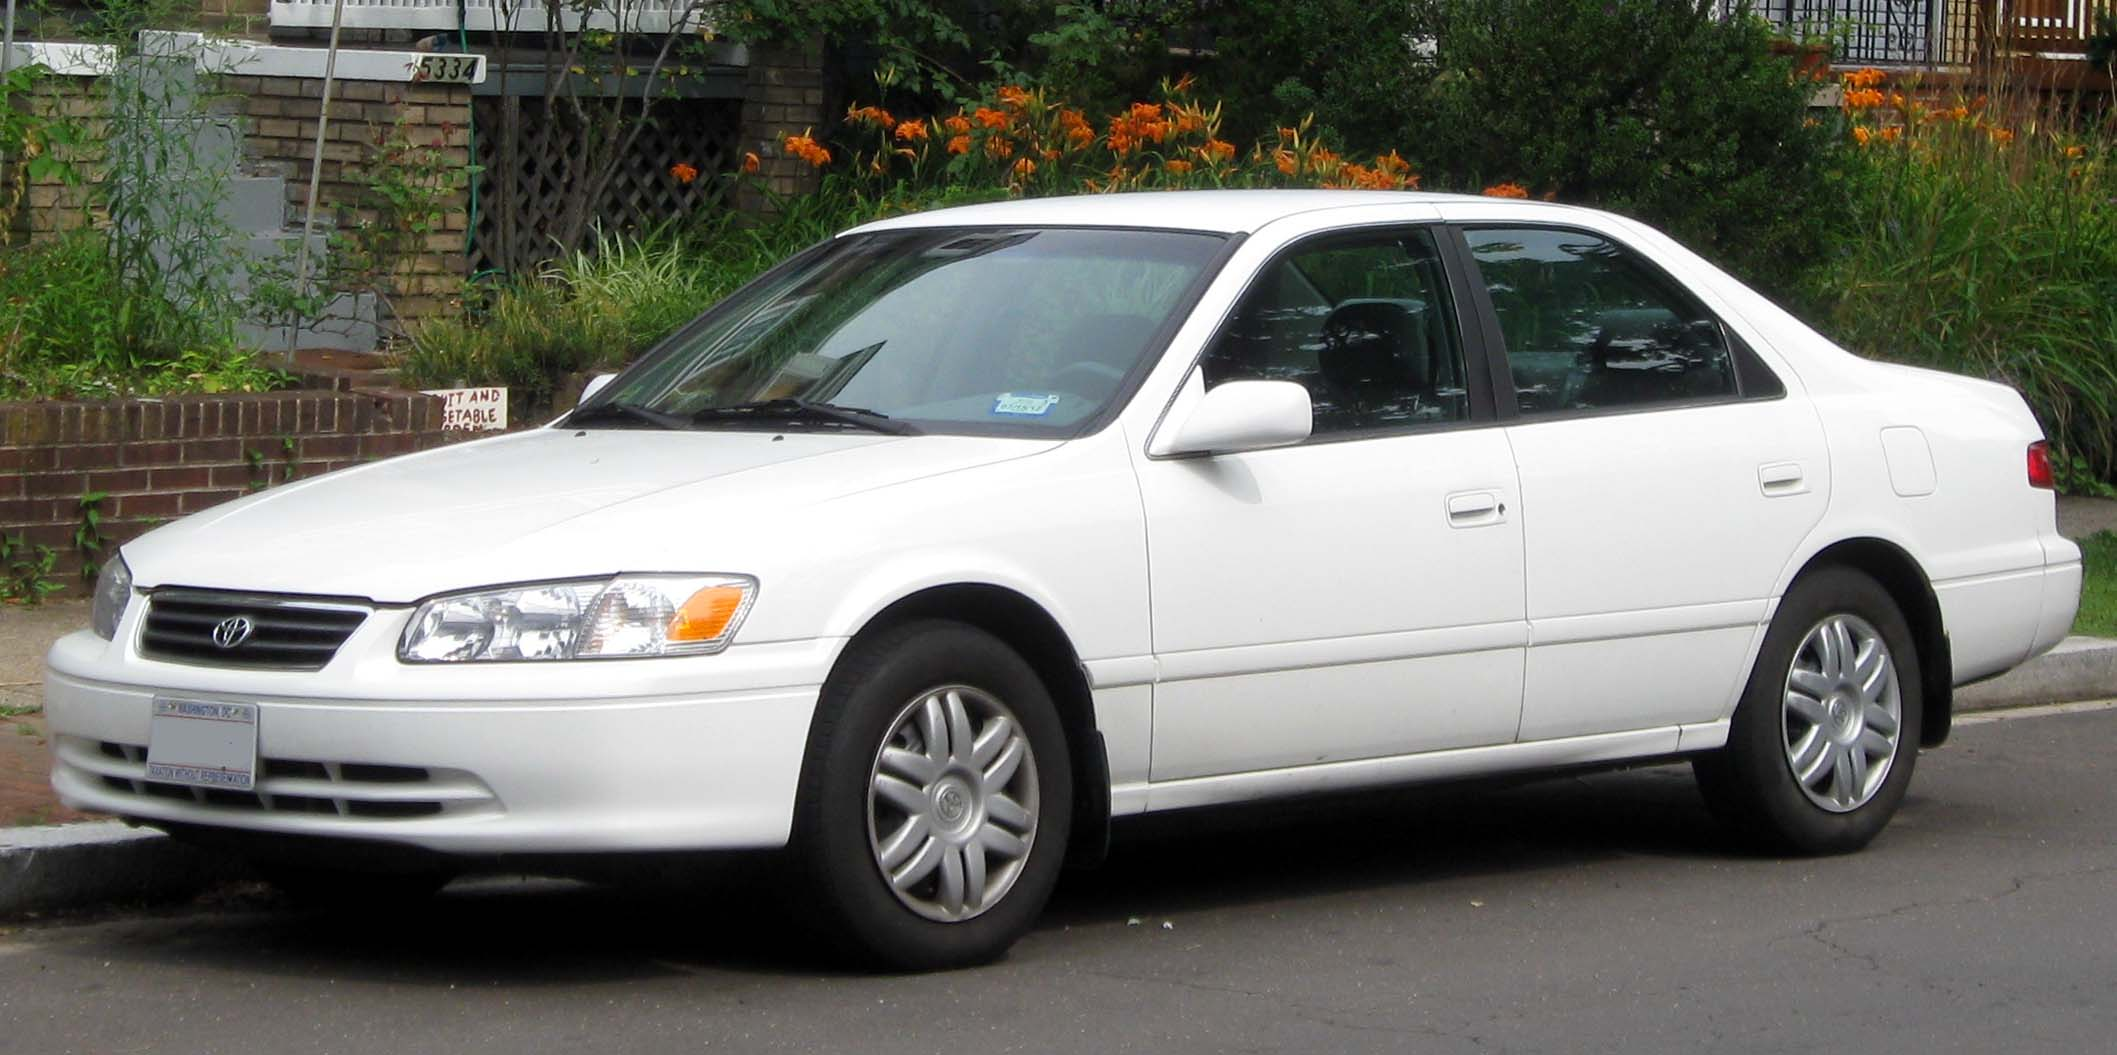 2003 Toyota Camry 20574f furthermore Toyota also Toyota Camry additionally 66255048 moreover Toyota Camry Us Spec V10 1982 84 Photos 101772. on toyota camry